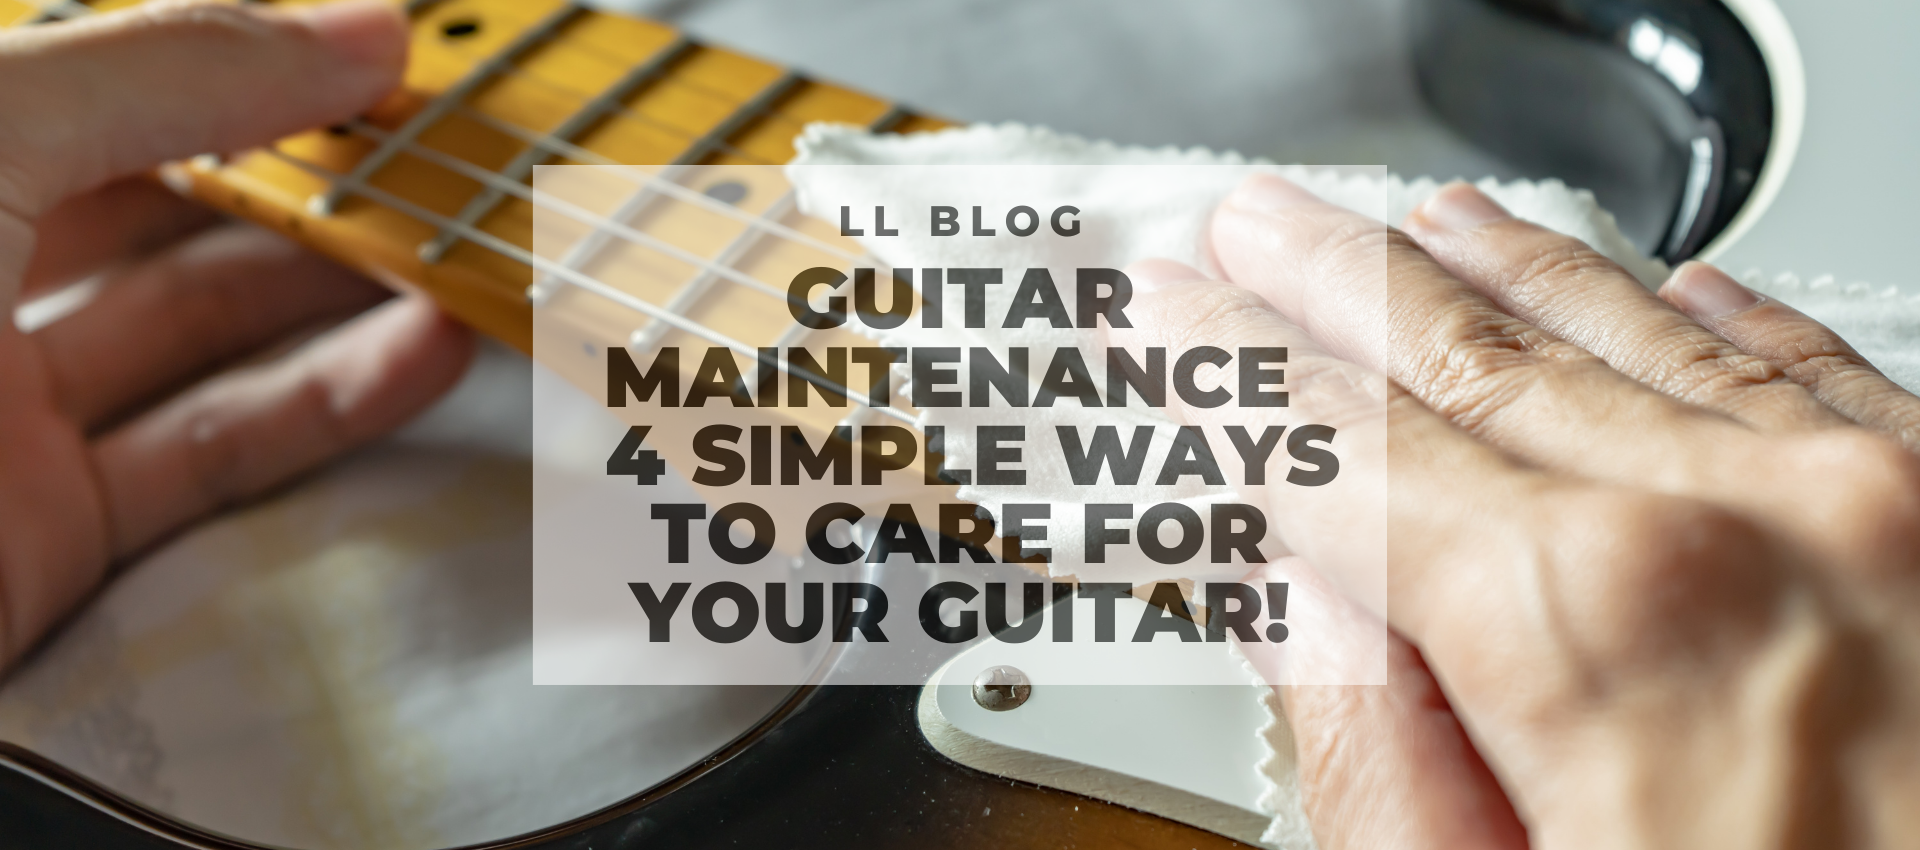 GUITAR MAINTENANCE 4 SIMPLE WAYS TO KEEP YOUR GUITAR PLAYING FIT 3